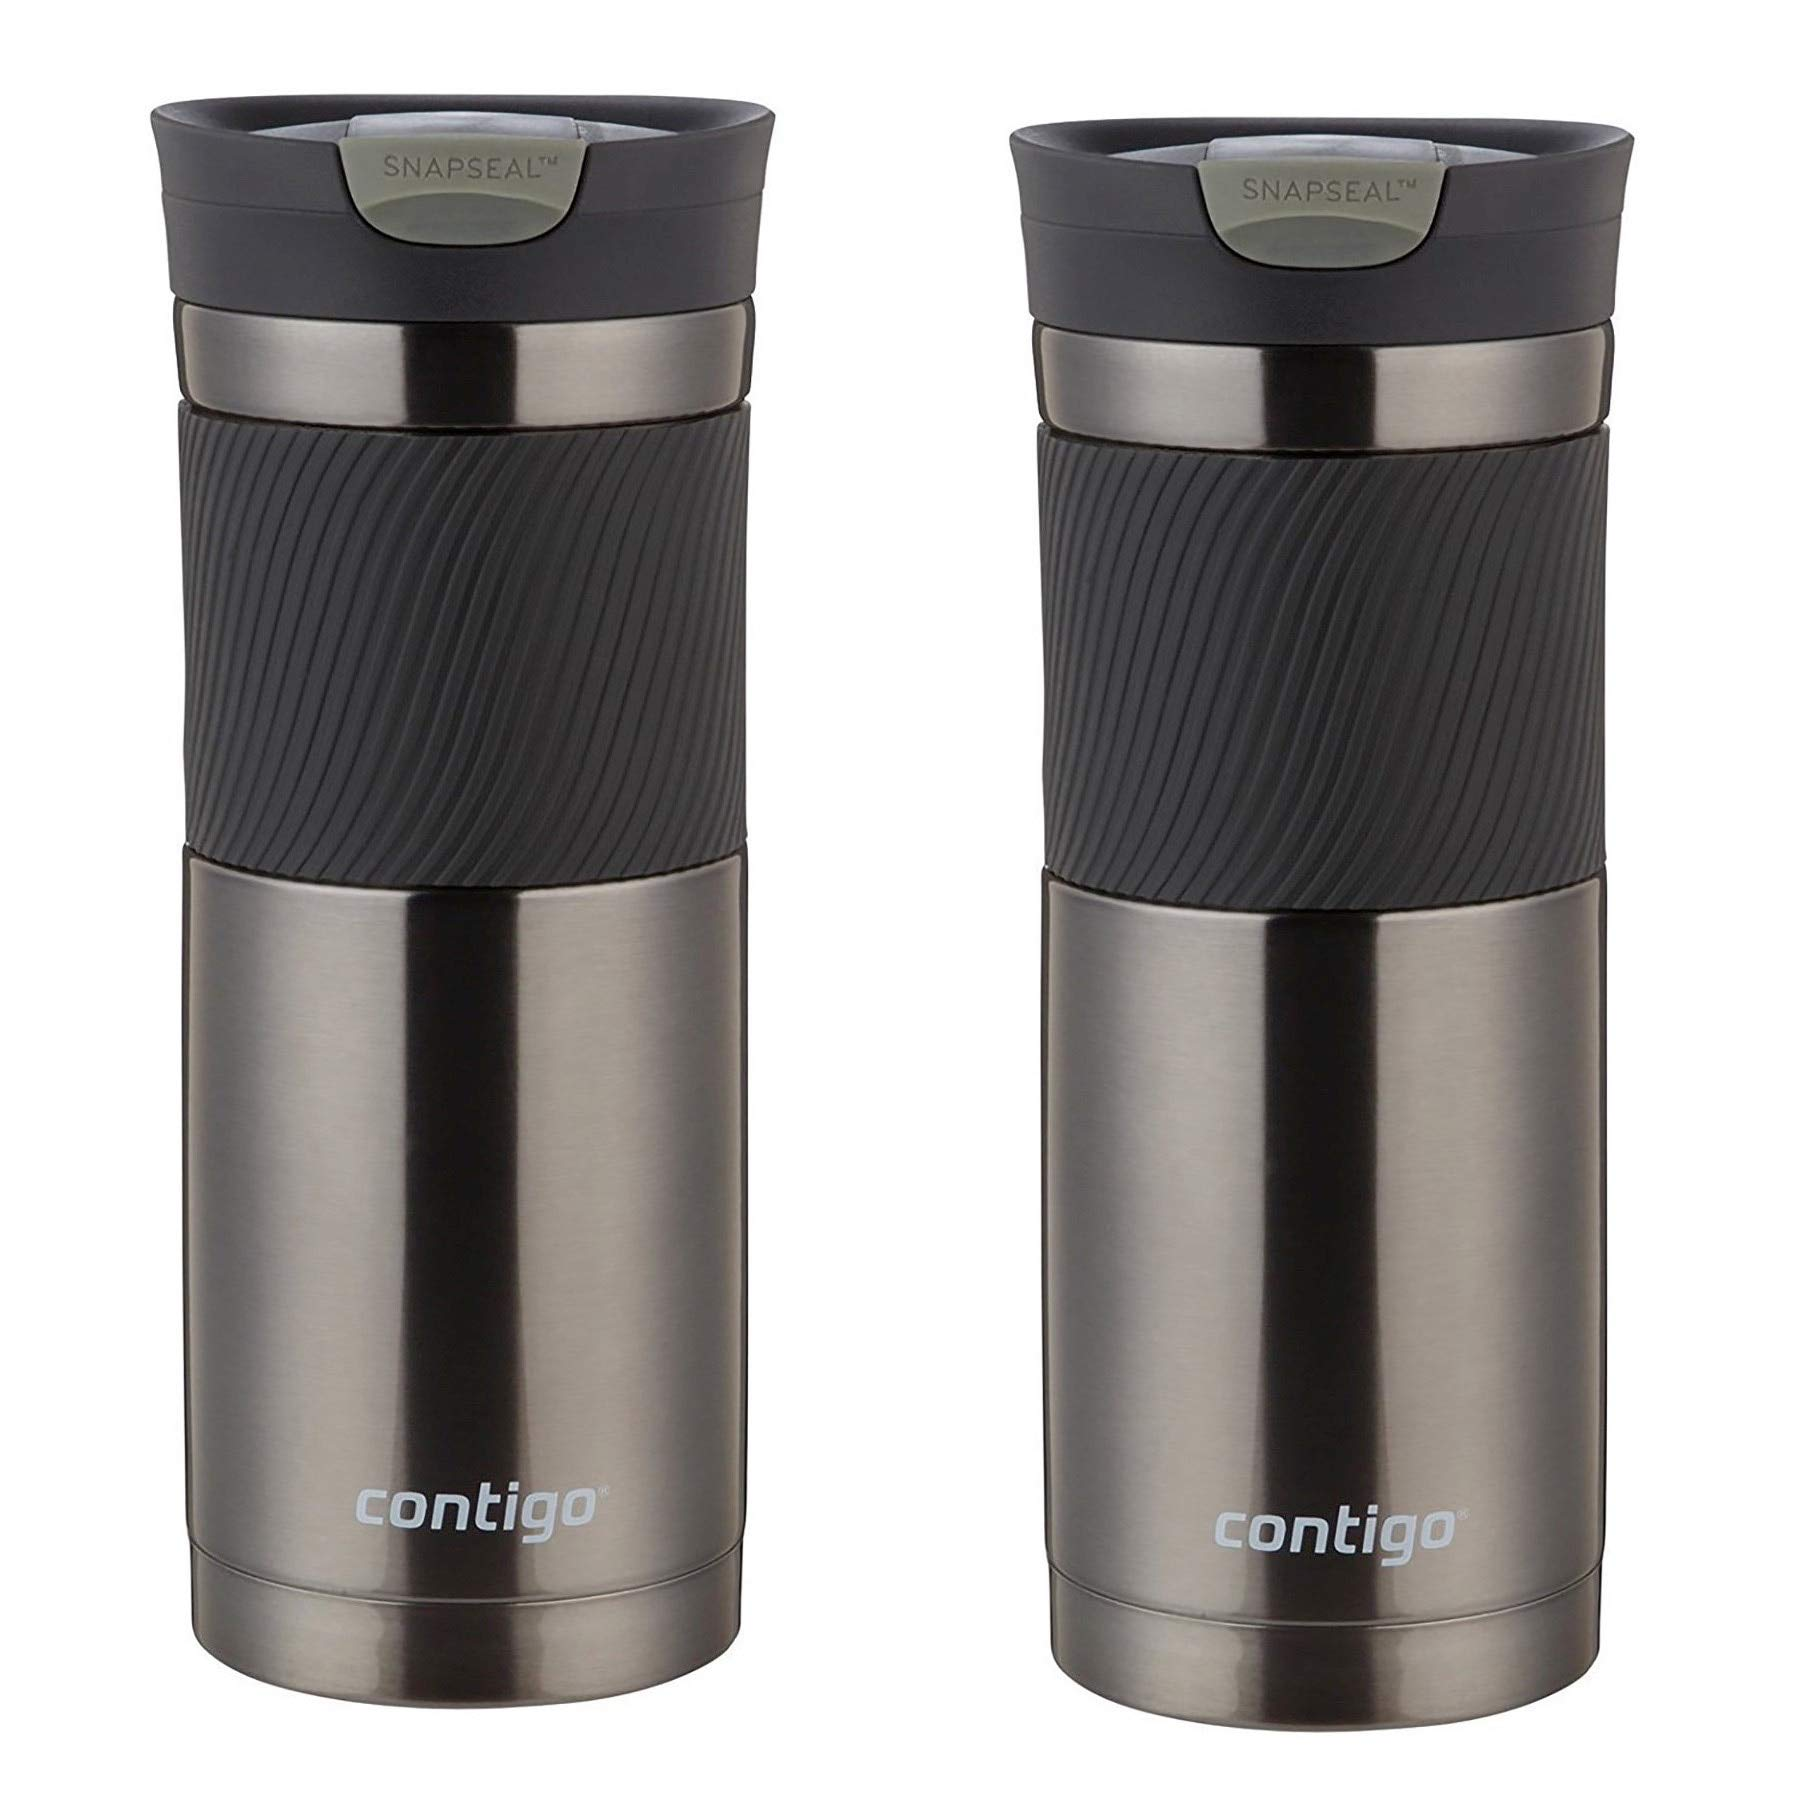 Contigo 20oz SnapSeal Byron Travel Mug, Gunmetal - Leak Proof Coffee Mug - Vacuum Insulated - Maintains the Temperature of All Drinks, Hot or Cold - Fits Most Car Cupholders - 2 Pack